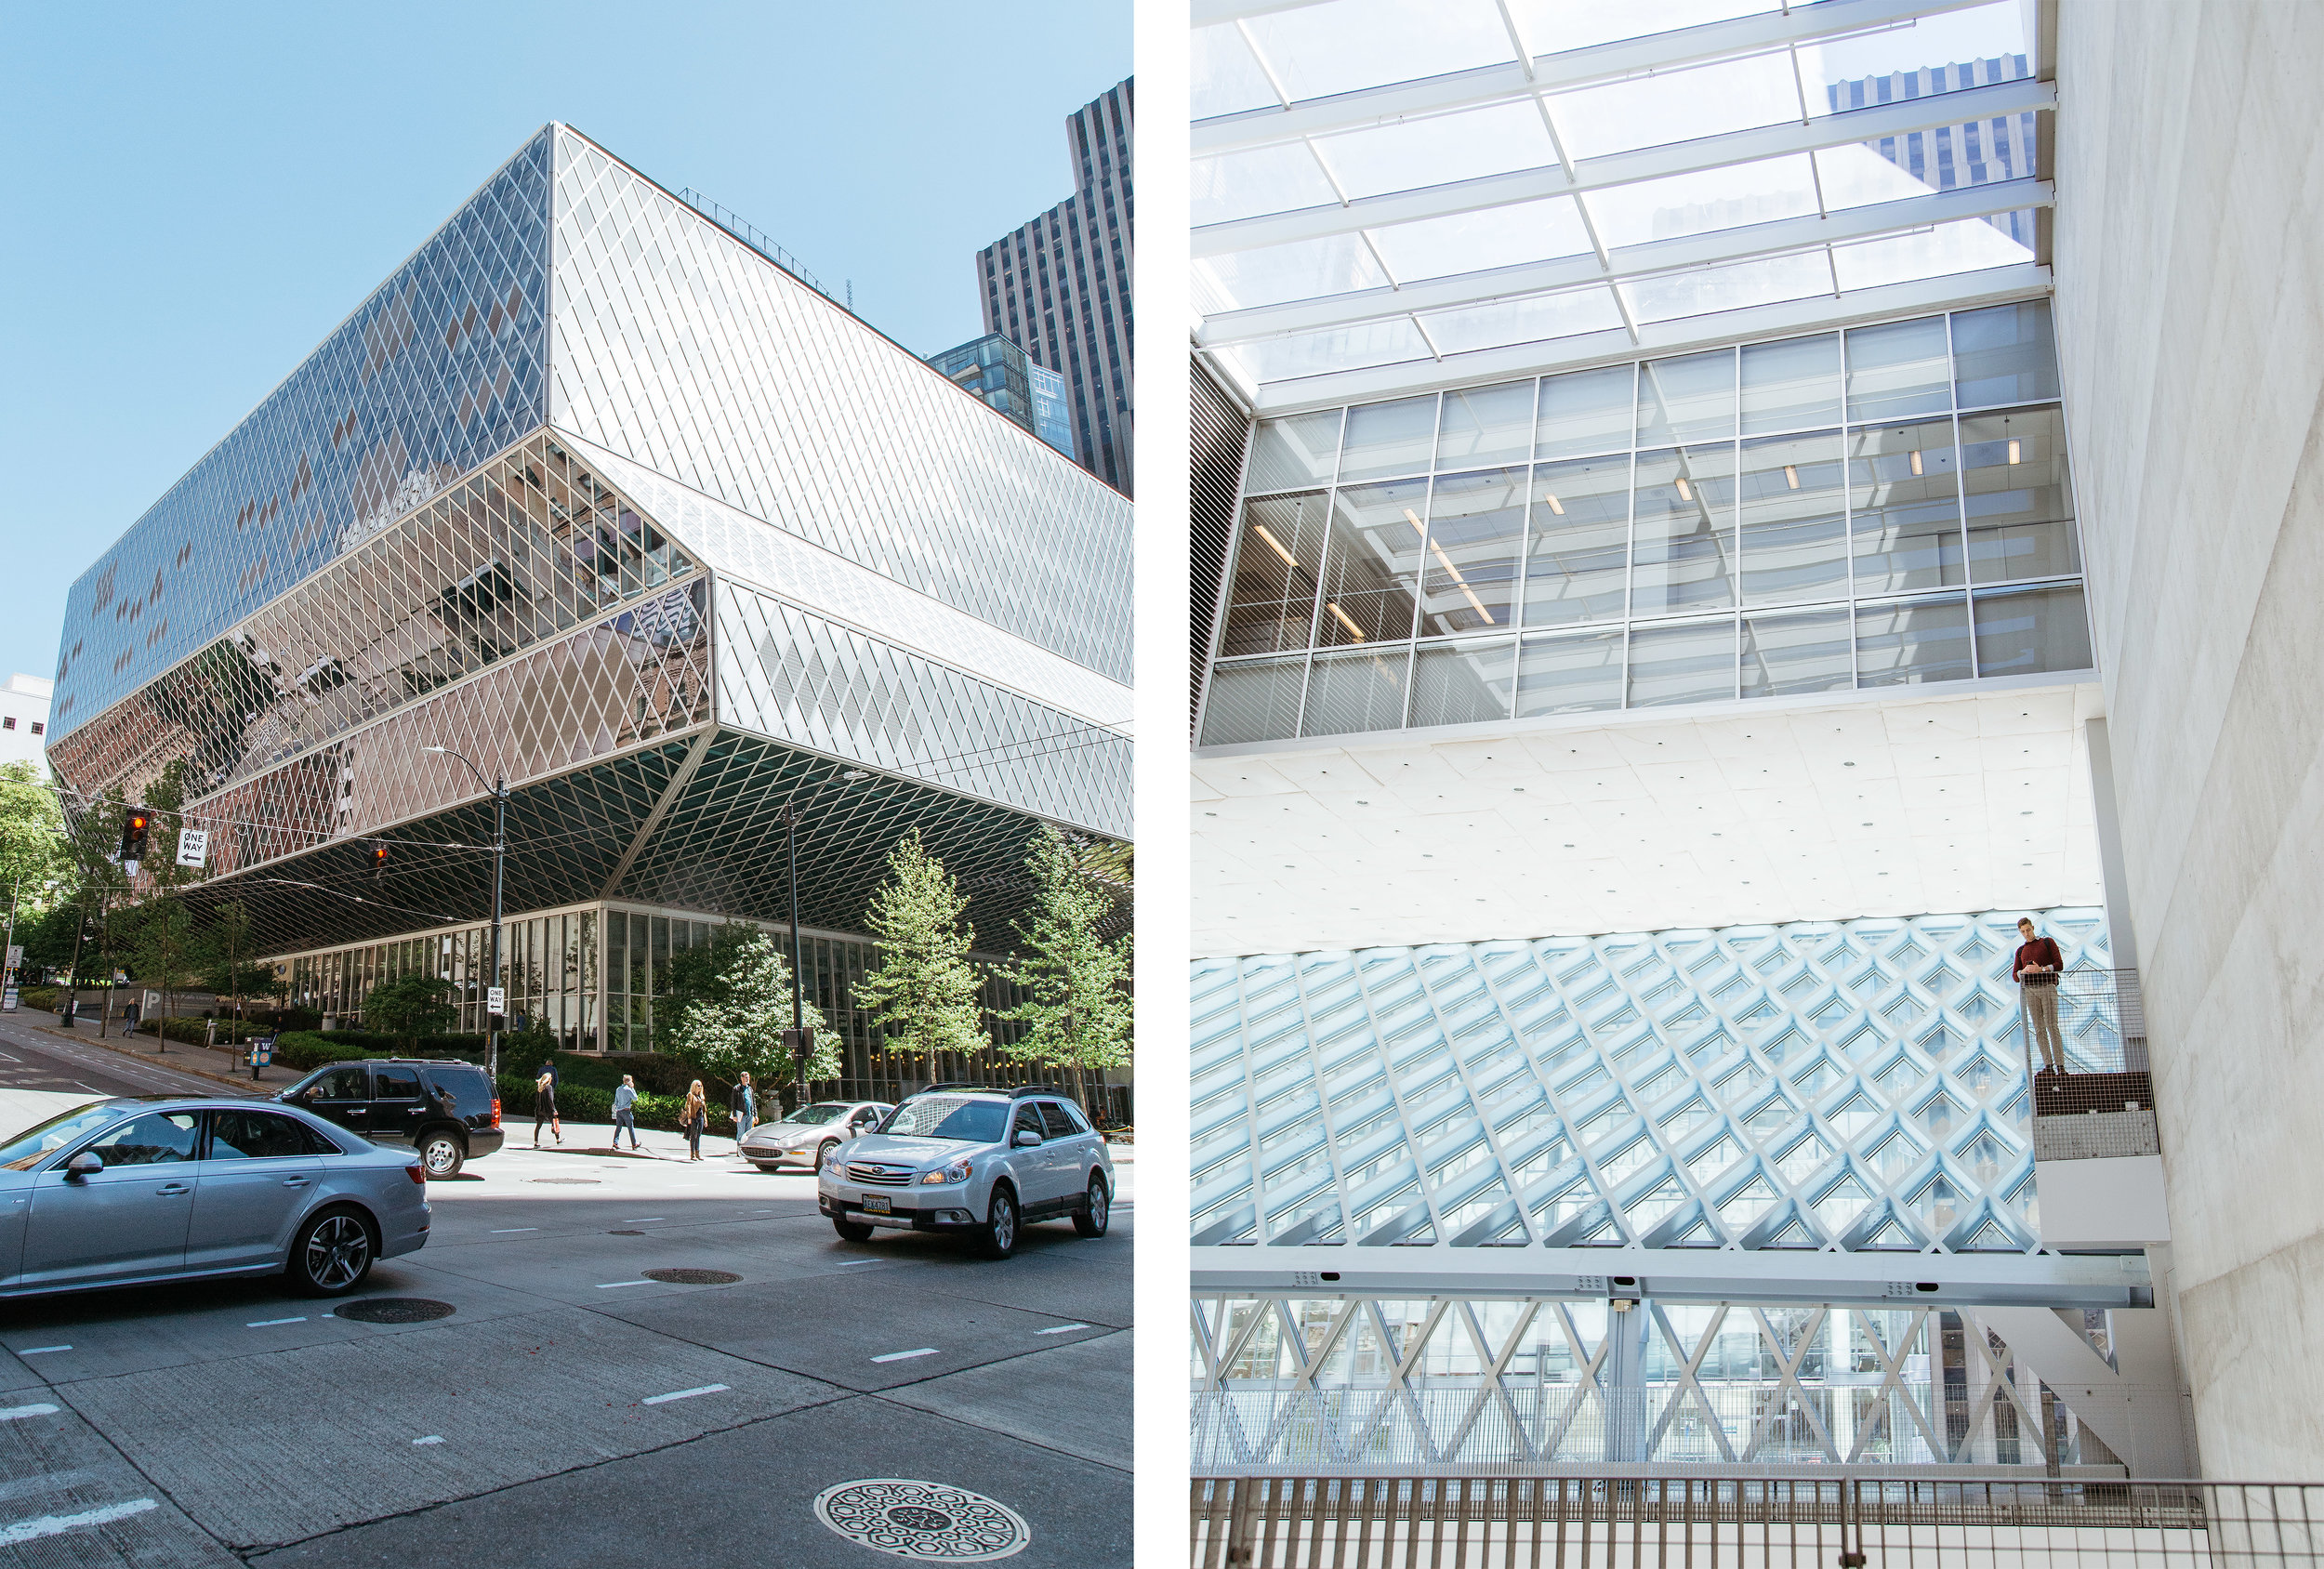 The exterior (left) and interior (right) of The Seattle Public Library.